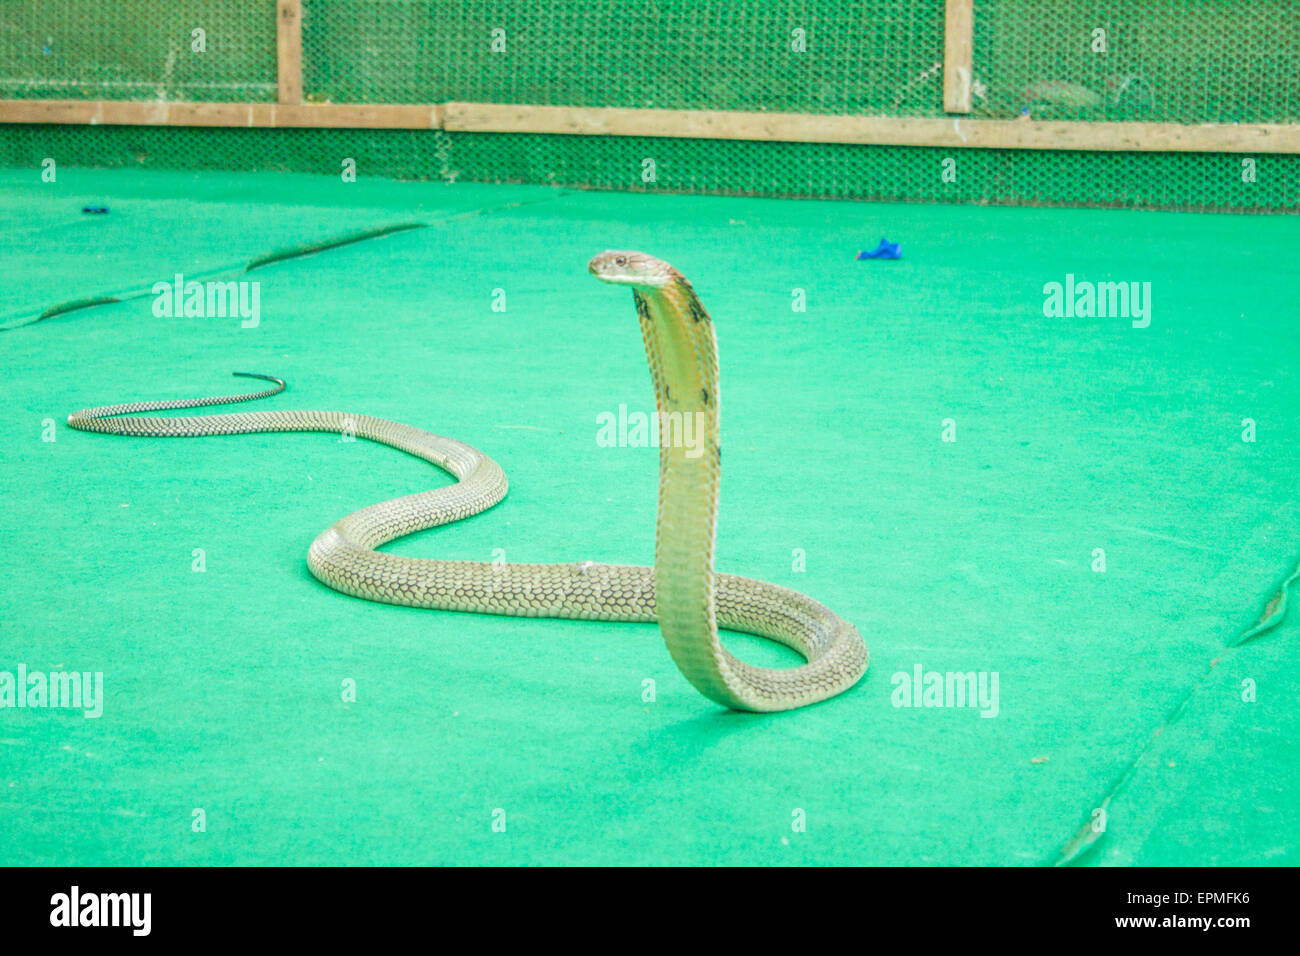 cobra snake strike illustration stock photos cobra snake strike